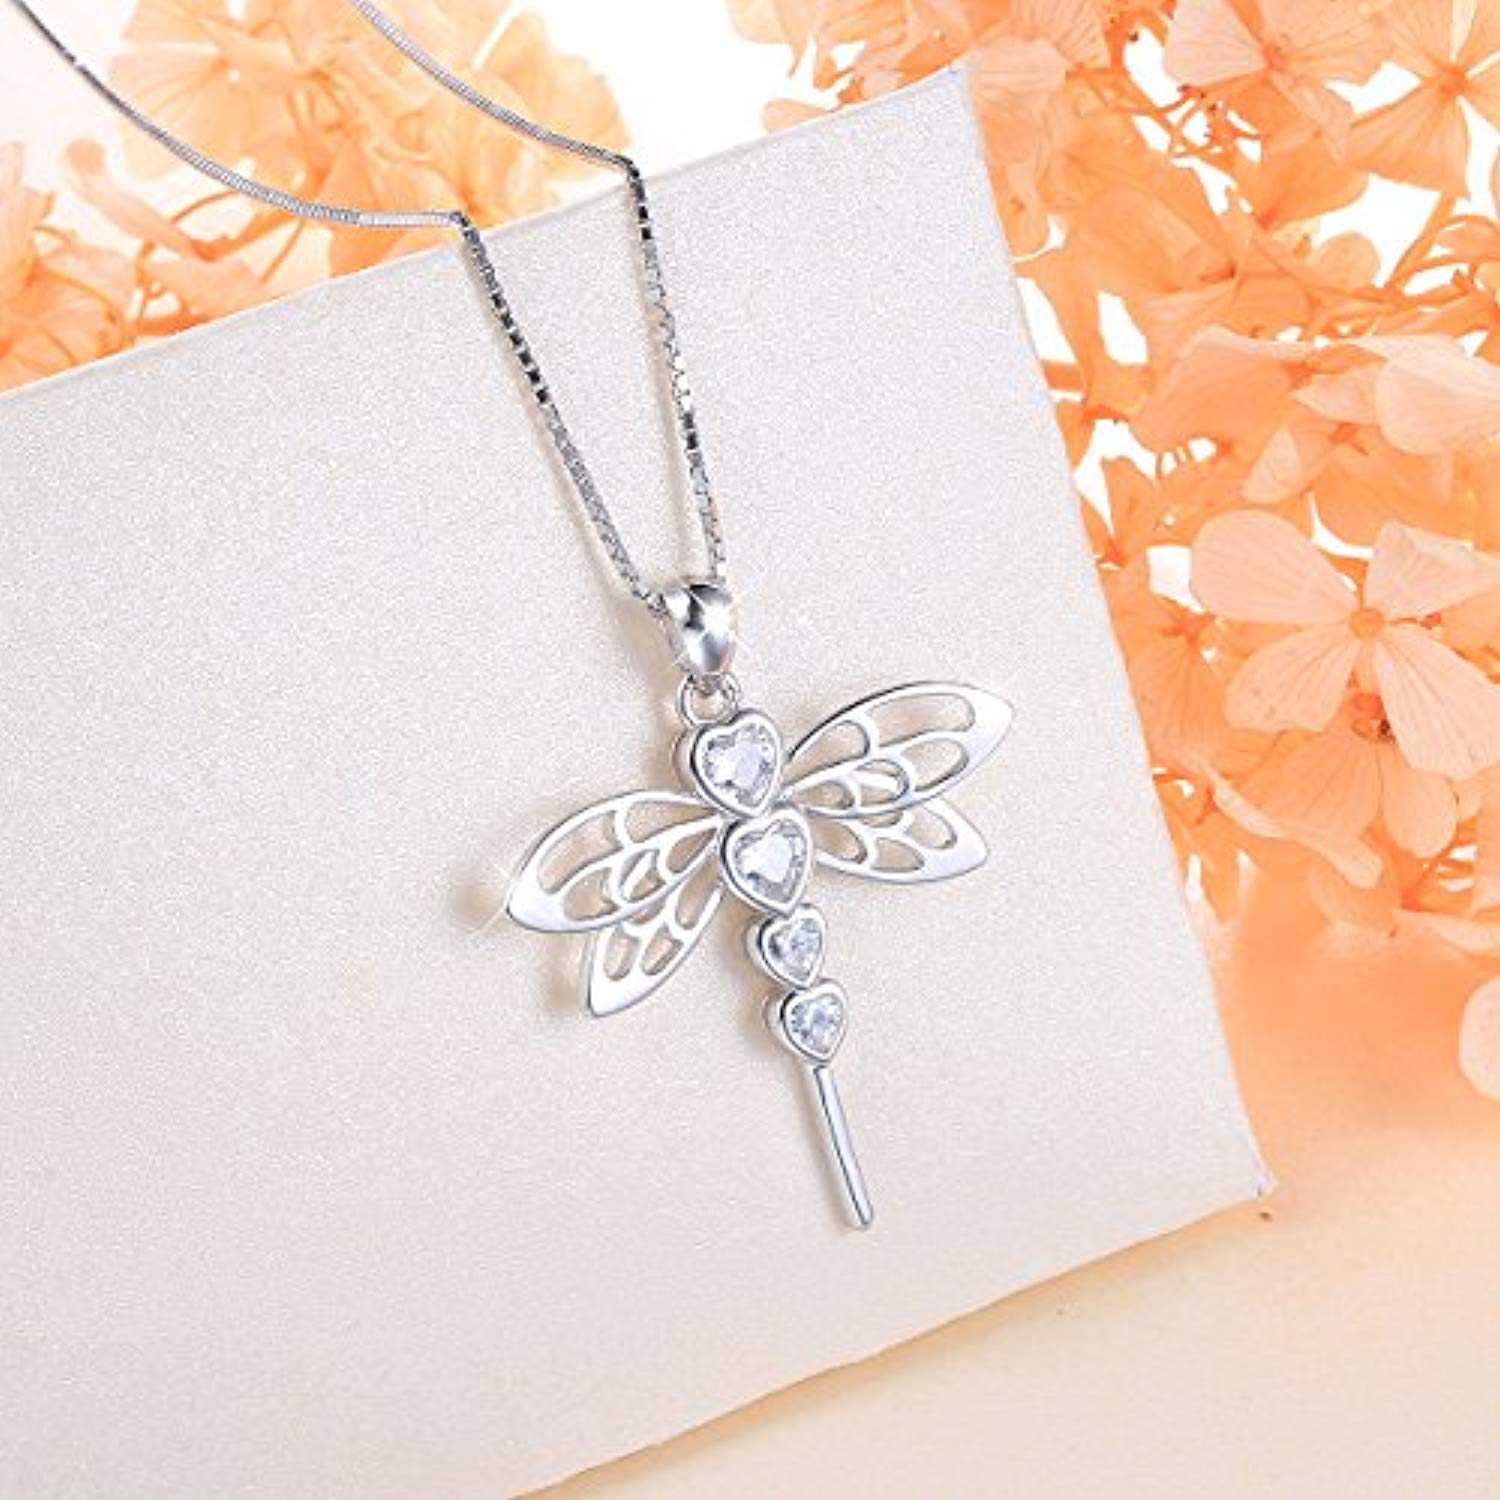 Dragonfly S925 Sterling Silver Elegant Cute Animal Pendant Necklace for Women Teen Girl 18